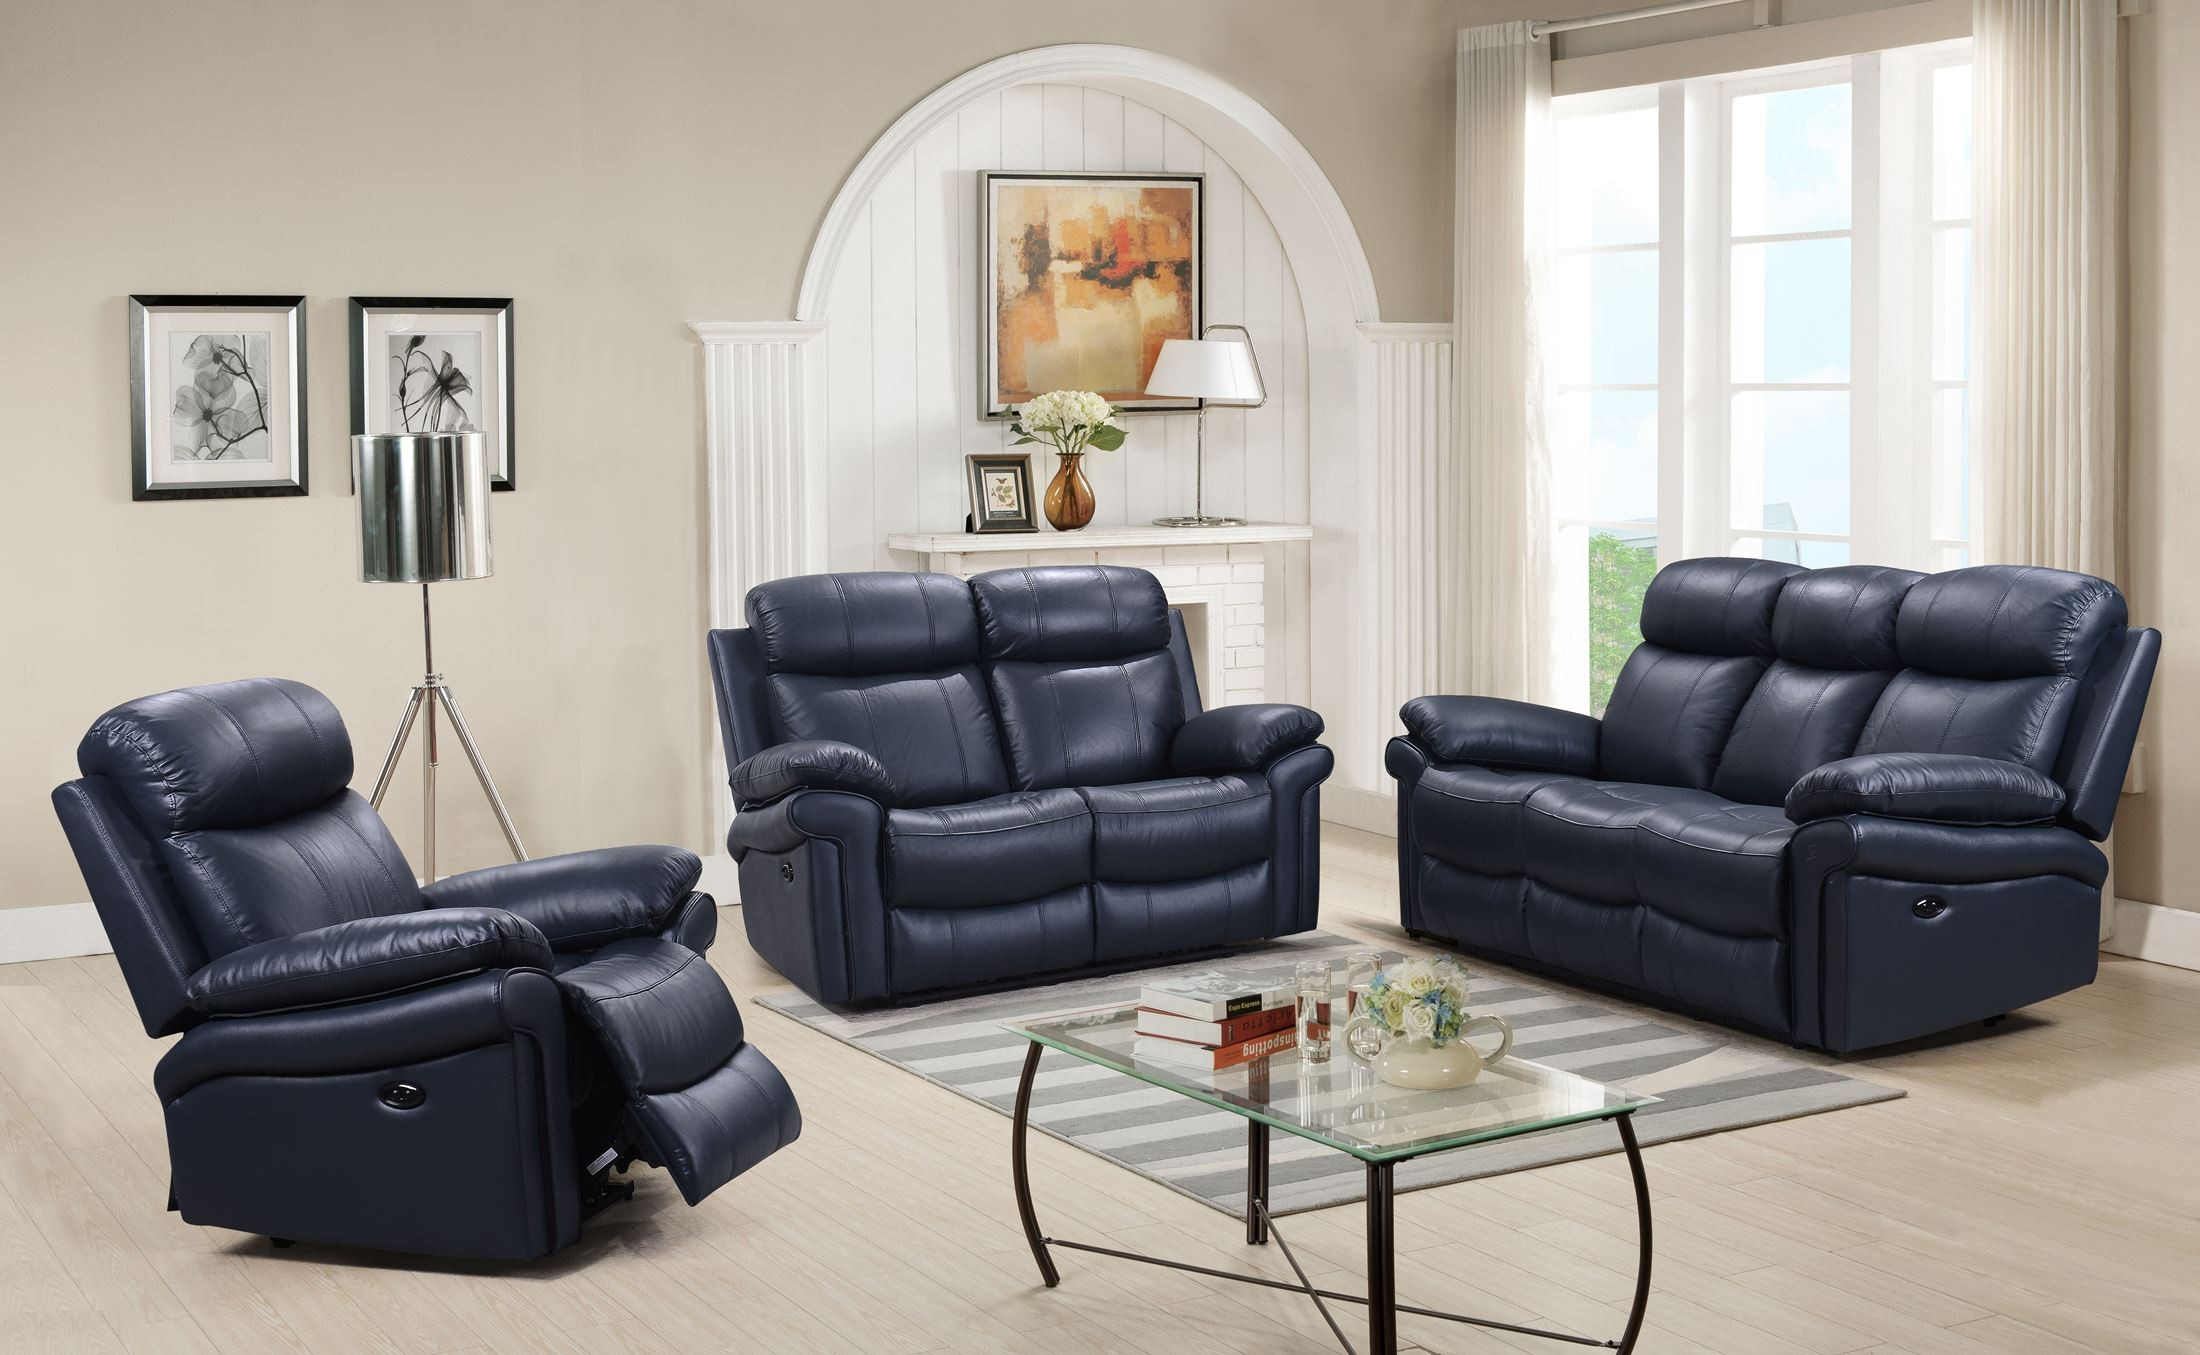 Surprising Shae Joplin Blue Leather Power Reclining Chair Gmtry Best Dining Table And Chair Ideas Images Gmtryco